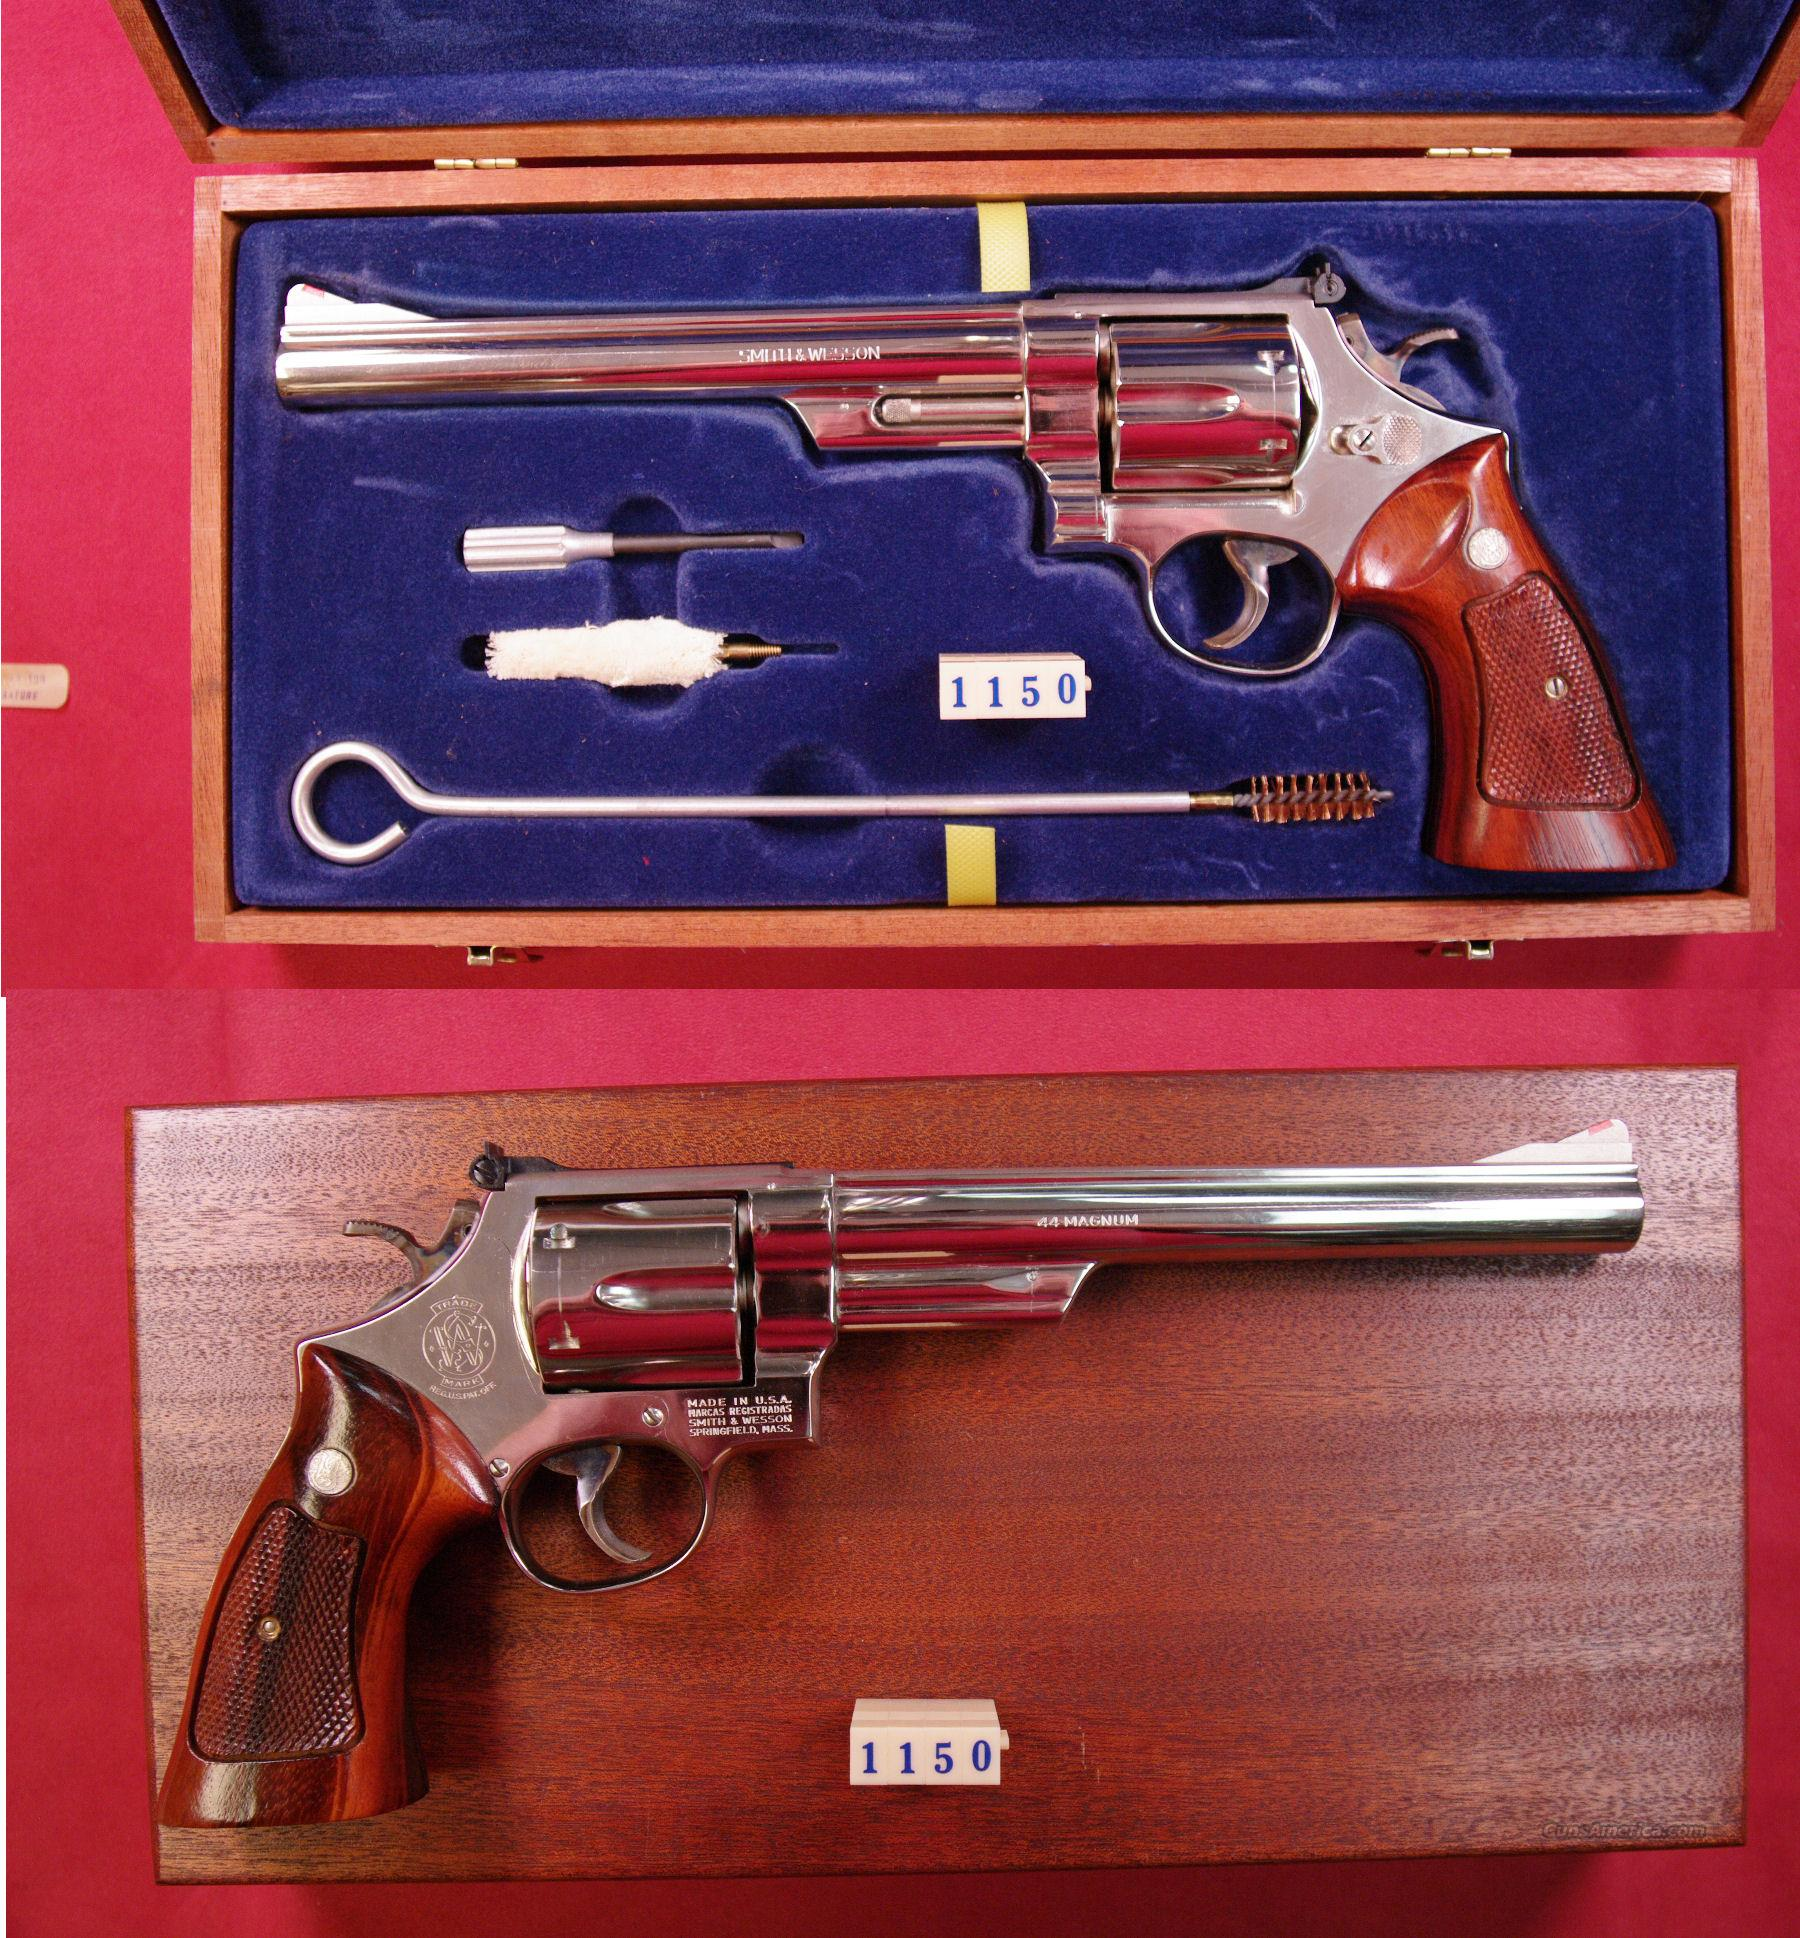 Smith & Wesson M29-2 44 Magnum  Guns > Pistols > Smith & Wesson Revolvers > Full Frame Revolver